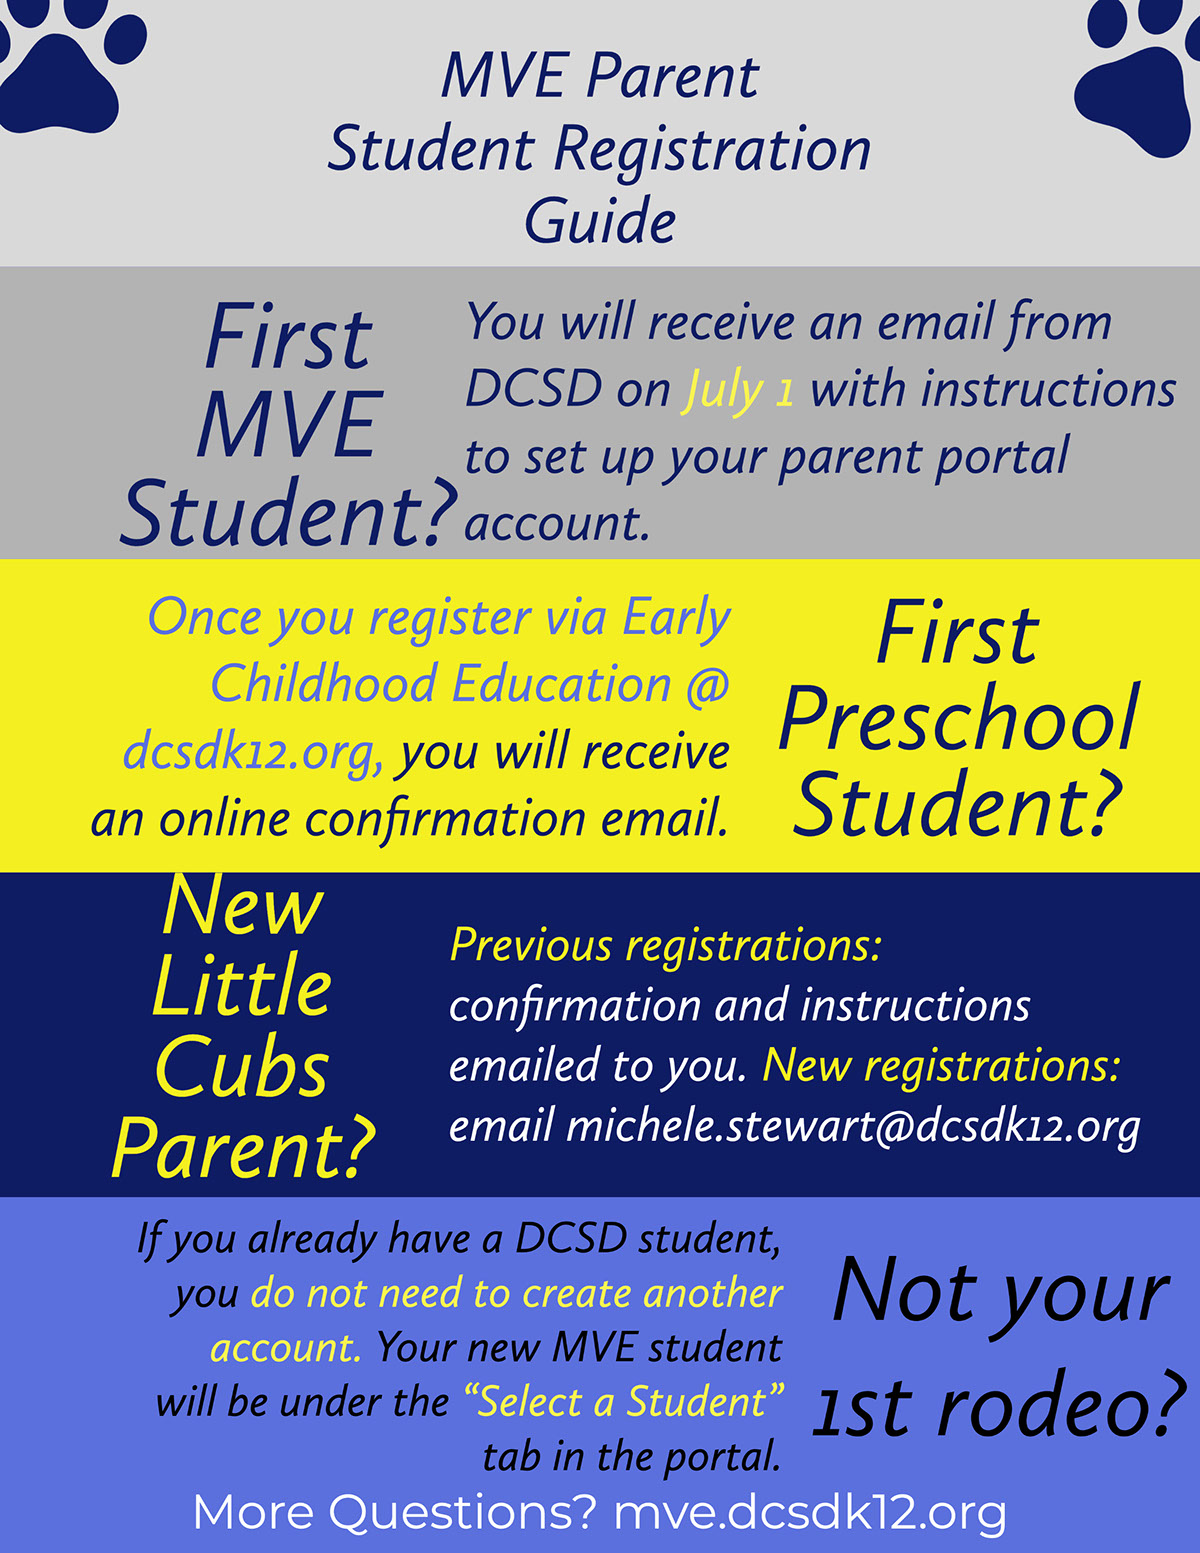 "First MVE Student? First MVE Student? First Preschool Student? Not your 1st rodeo? New Little Cubs Parent? MVE Parent Student Registration Guide More Questions? mve.dcsdk12.org Once you register via Early Childhood Education @ dcsdk12.org, you will receive an online confirmation email. You will receive an email from DCSD on July 1 with instructions to set up your parent portal account. Previous registrations: confirmation and instructions emailed to you. New registrations: email michele.stewart@dcsdk12.org If you already have a DCSD student, you do not need to create another account. Your new MVE student will be under the ""Select a Student"" tab in the portal."